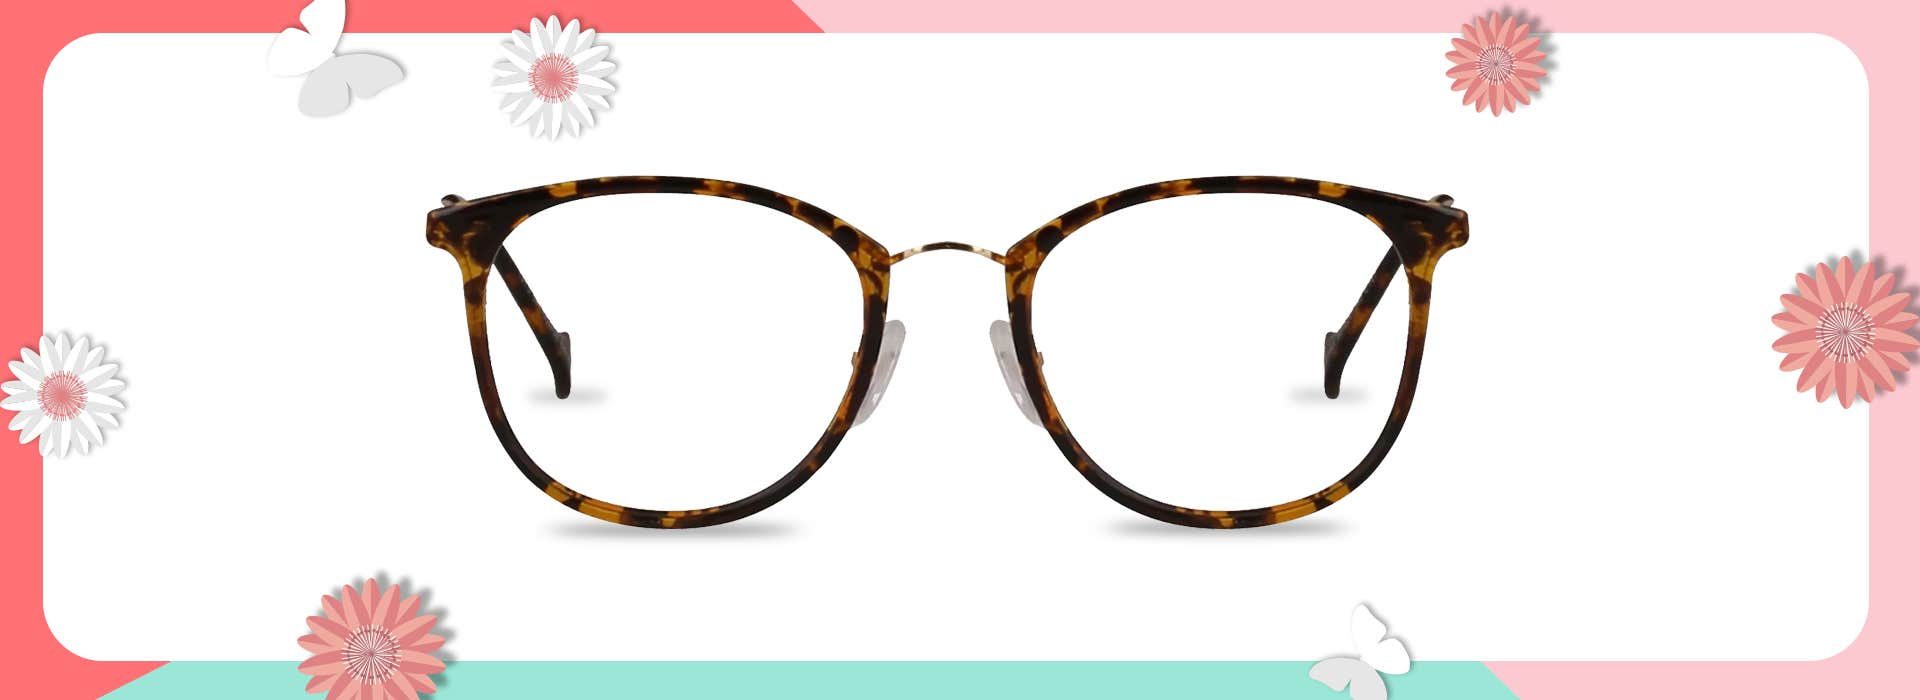 The 128708-C EYEGLASSES: